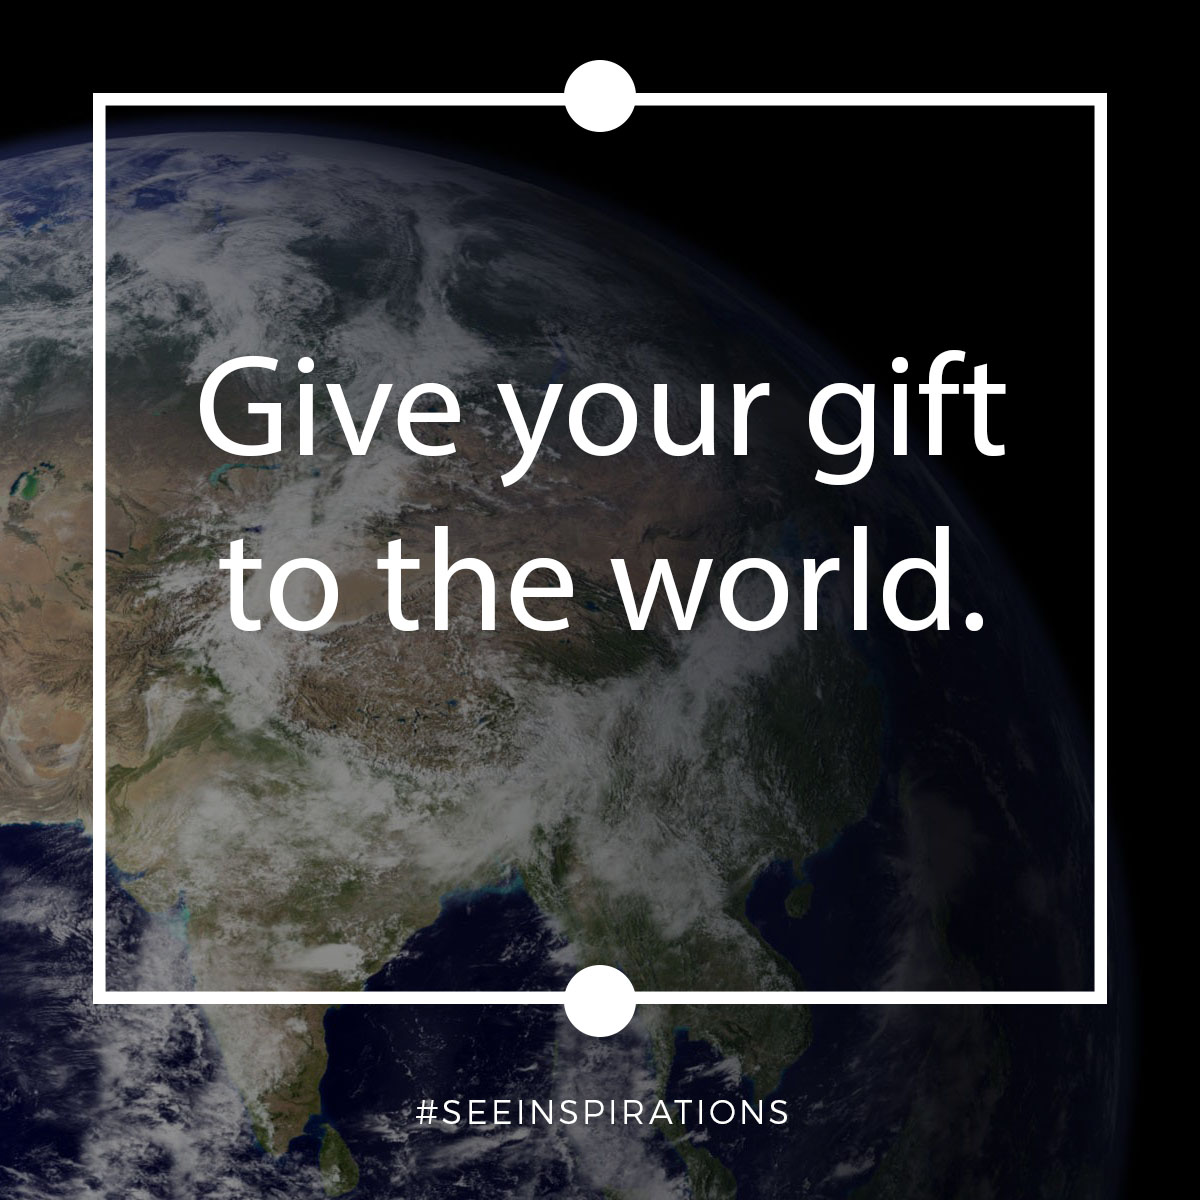 giveyourgifttotheworld